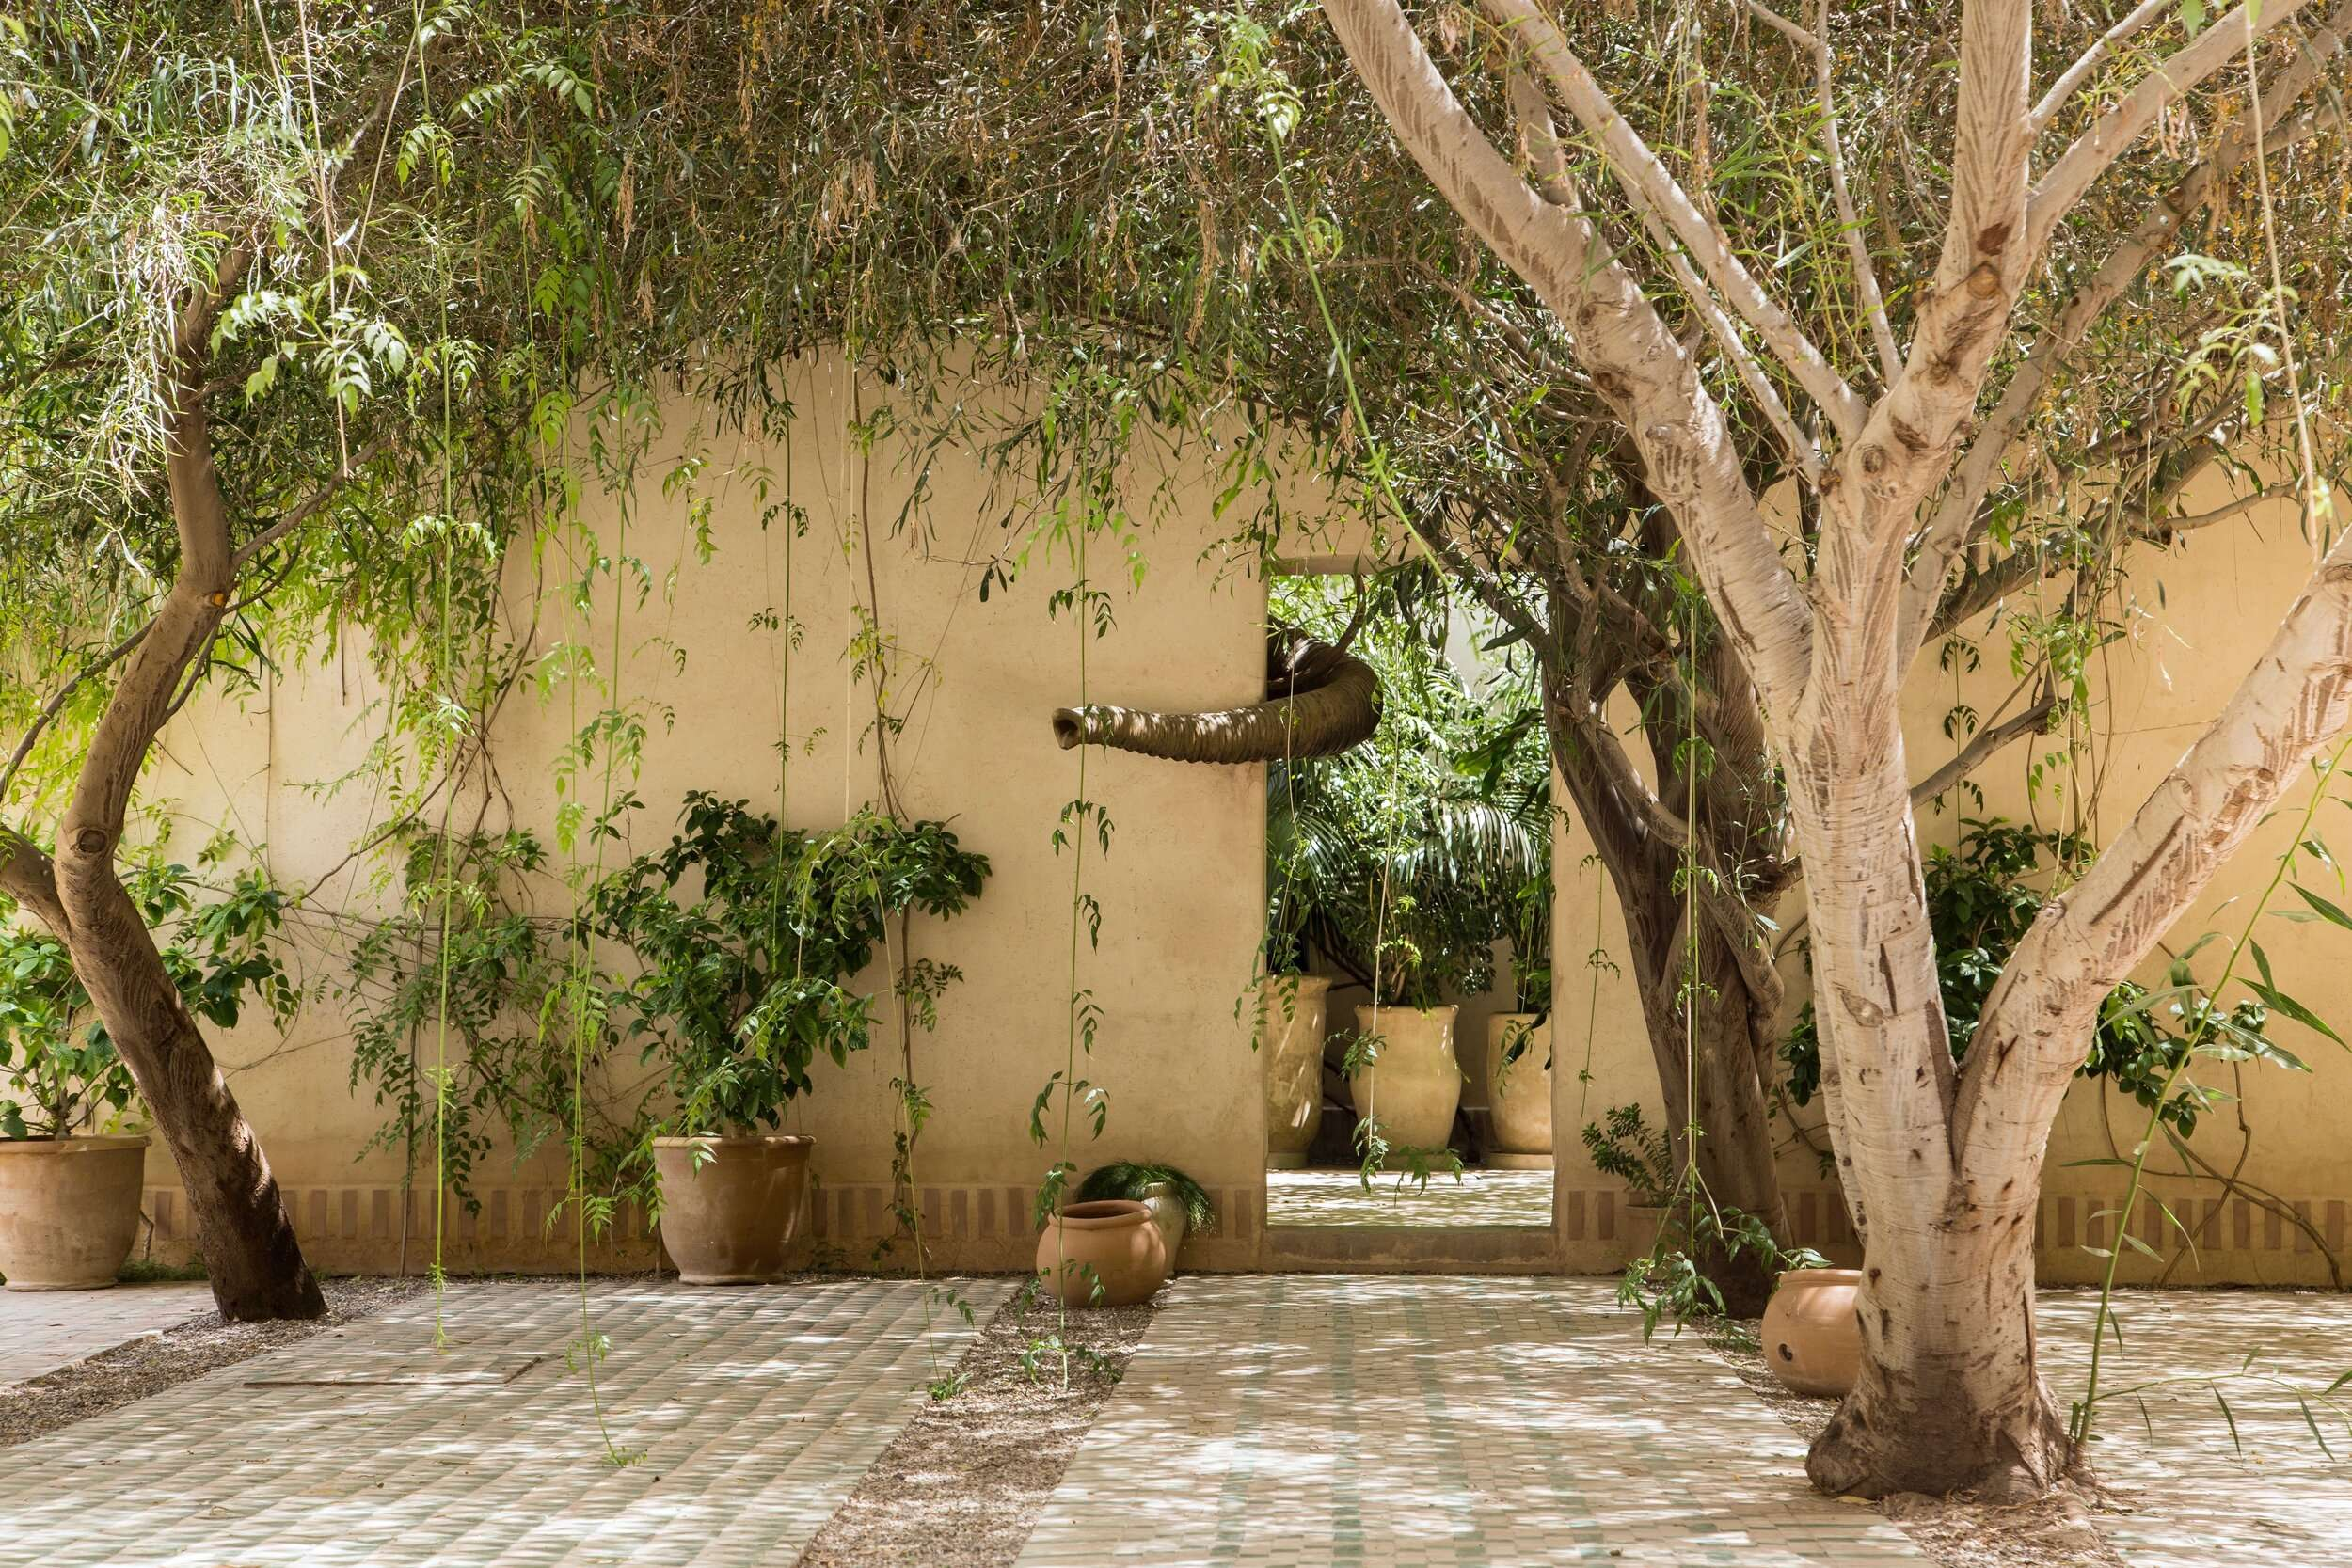 doorway in an outside wall with an elephant trunk art installation. surrounded by trees and plants, at dar el sadaka in Marrakech